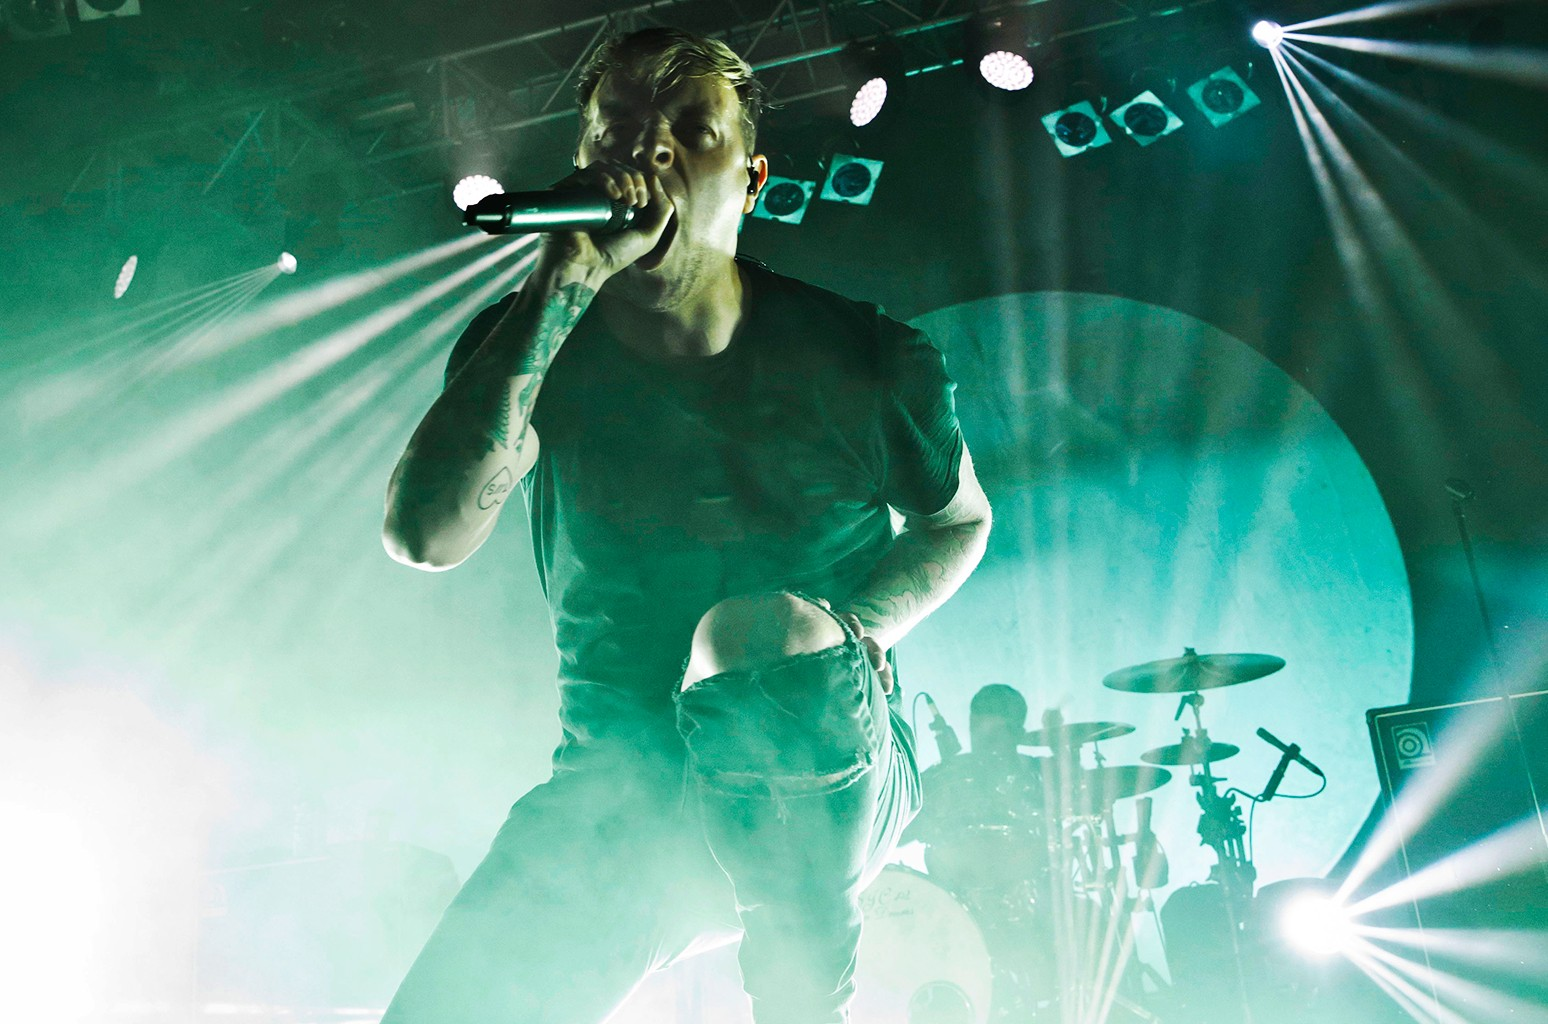 Samuel David Carter of the British band Architects performs live during a concert at the Huxleys Neue Welton Oct. 30, 2016 in Berlin, Germany.